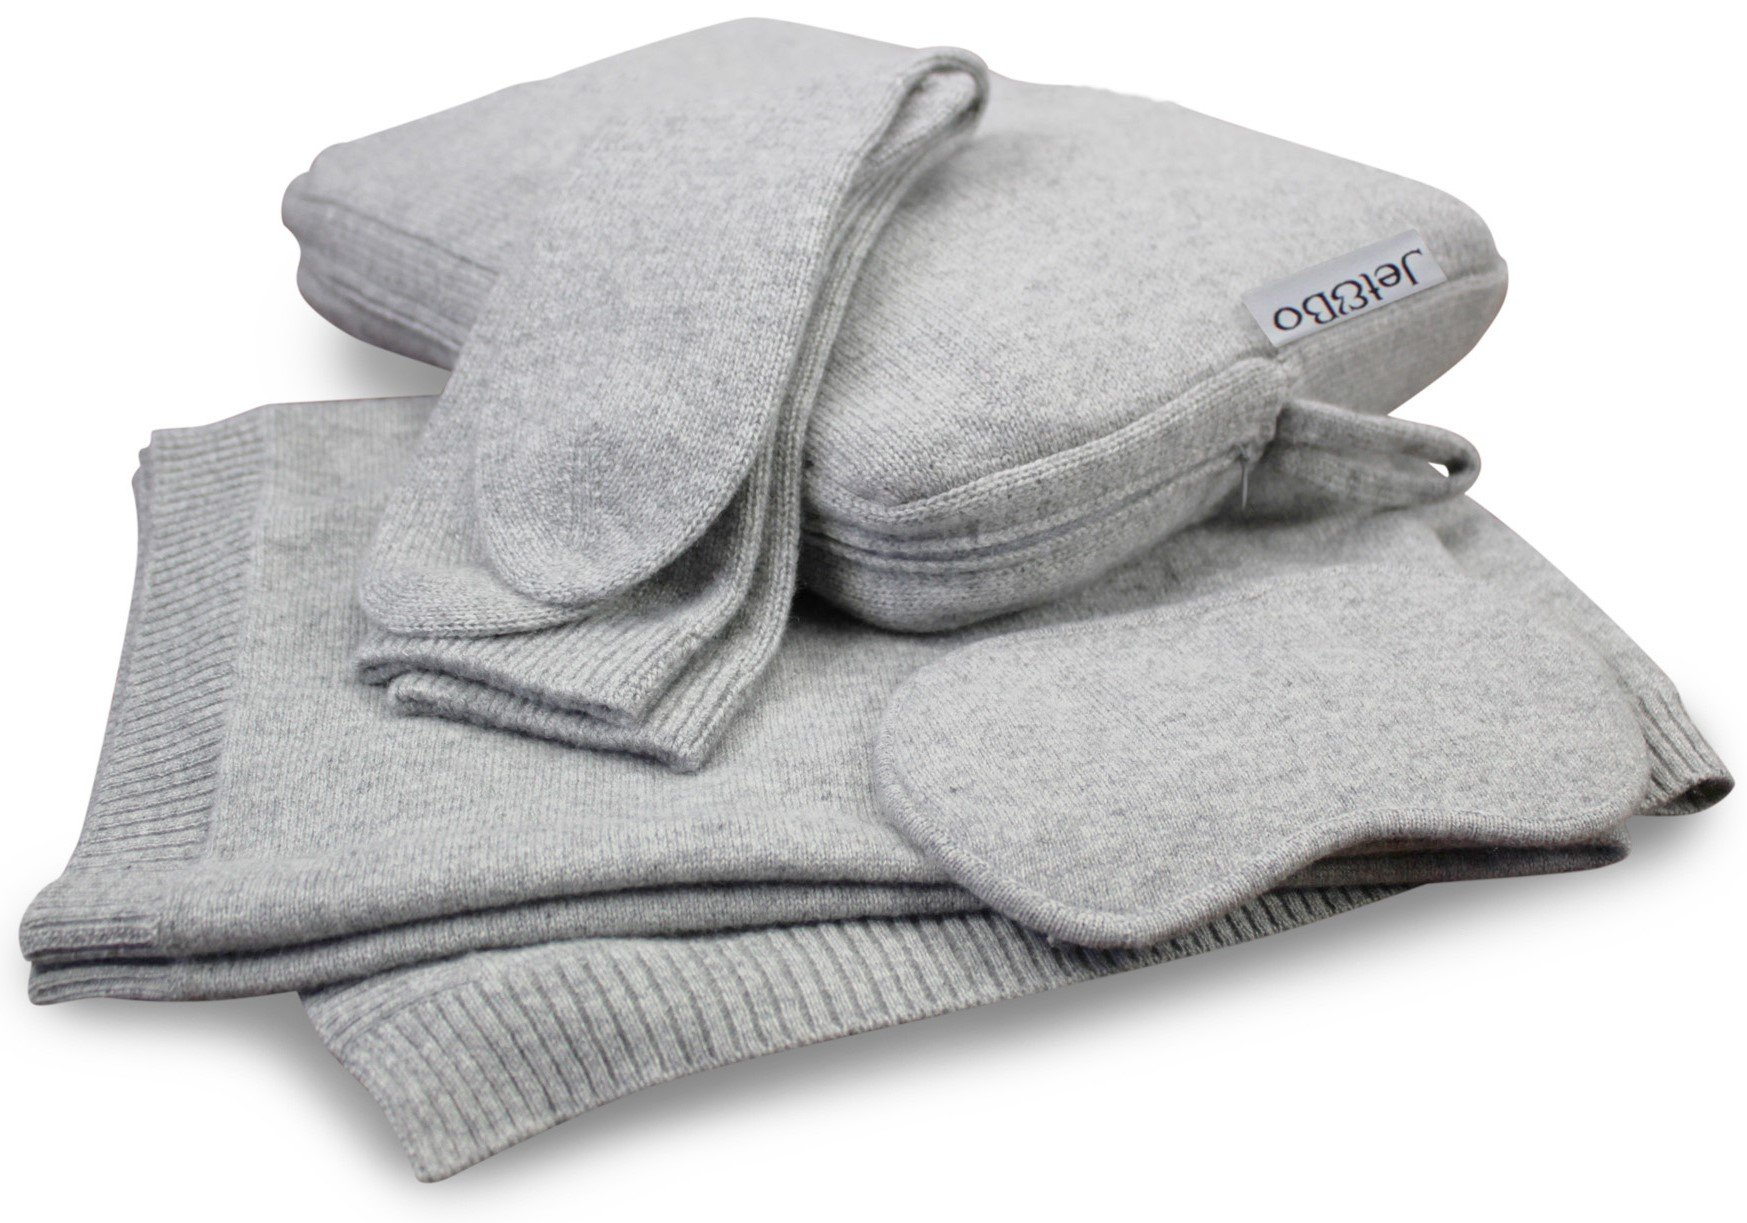 Jet&Bo 100% Cashmere Travel Set: Blanket, Eye Mask, Socks, Carry/Pillow Case Gray